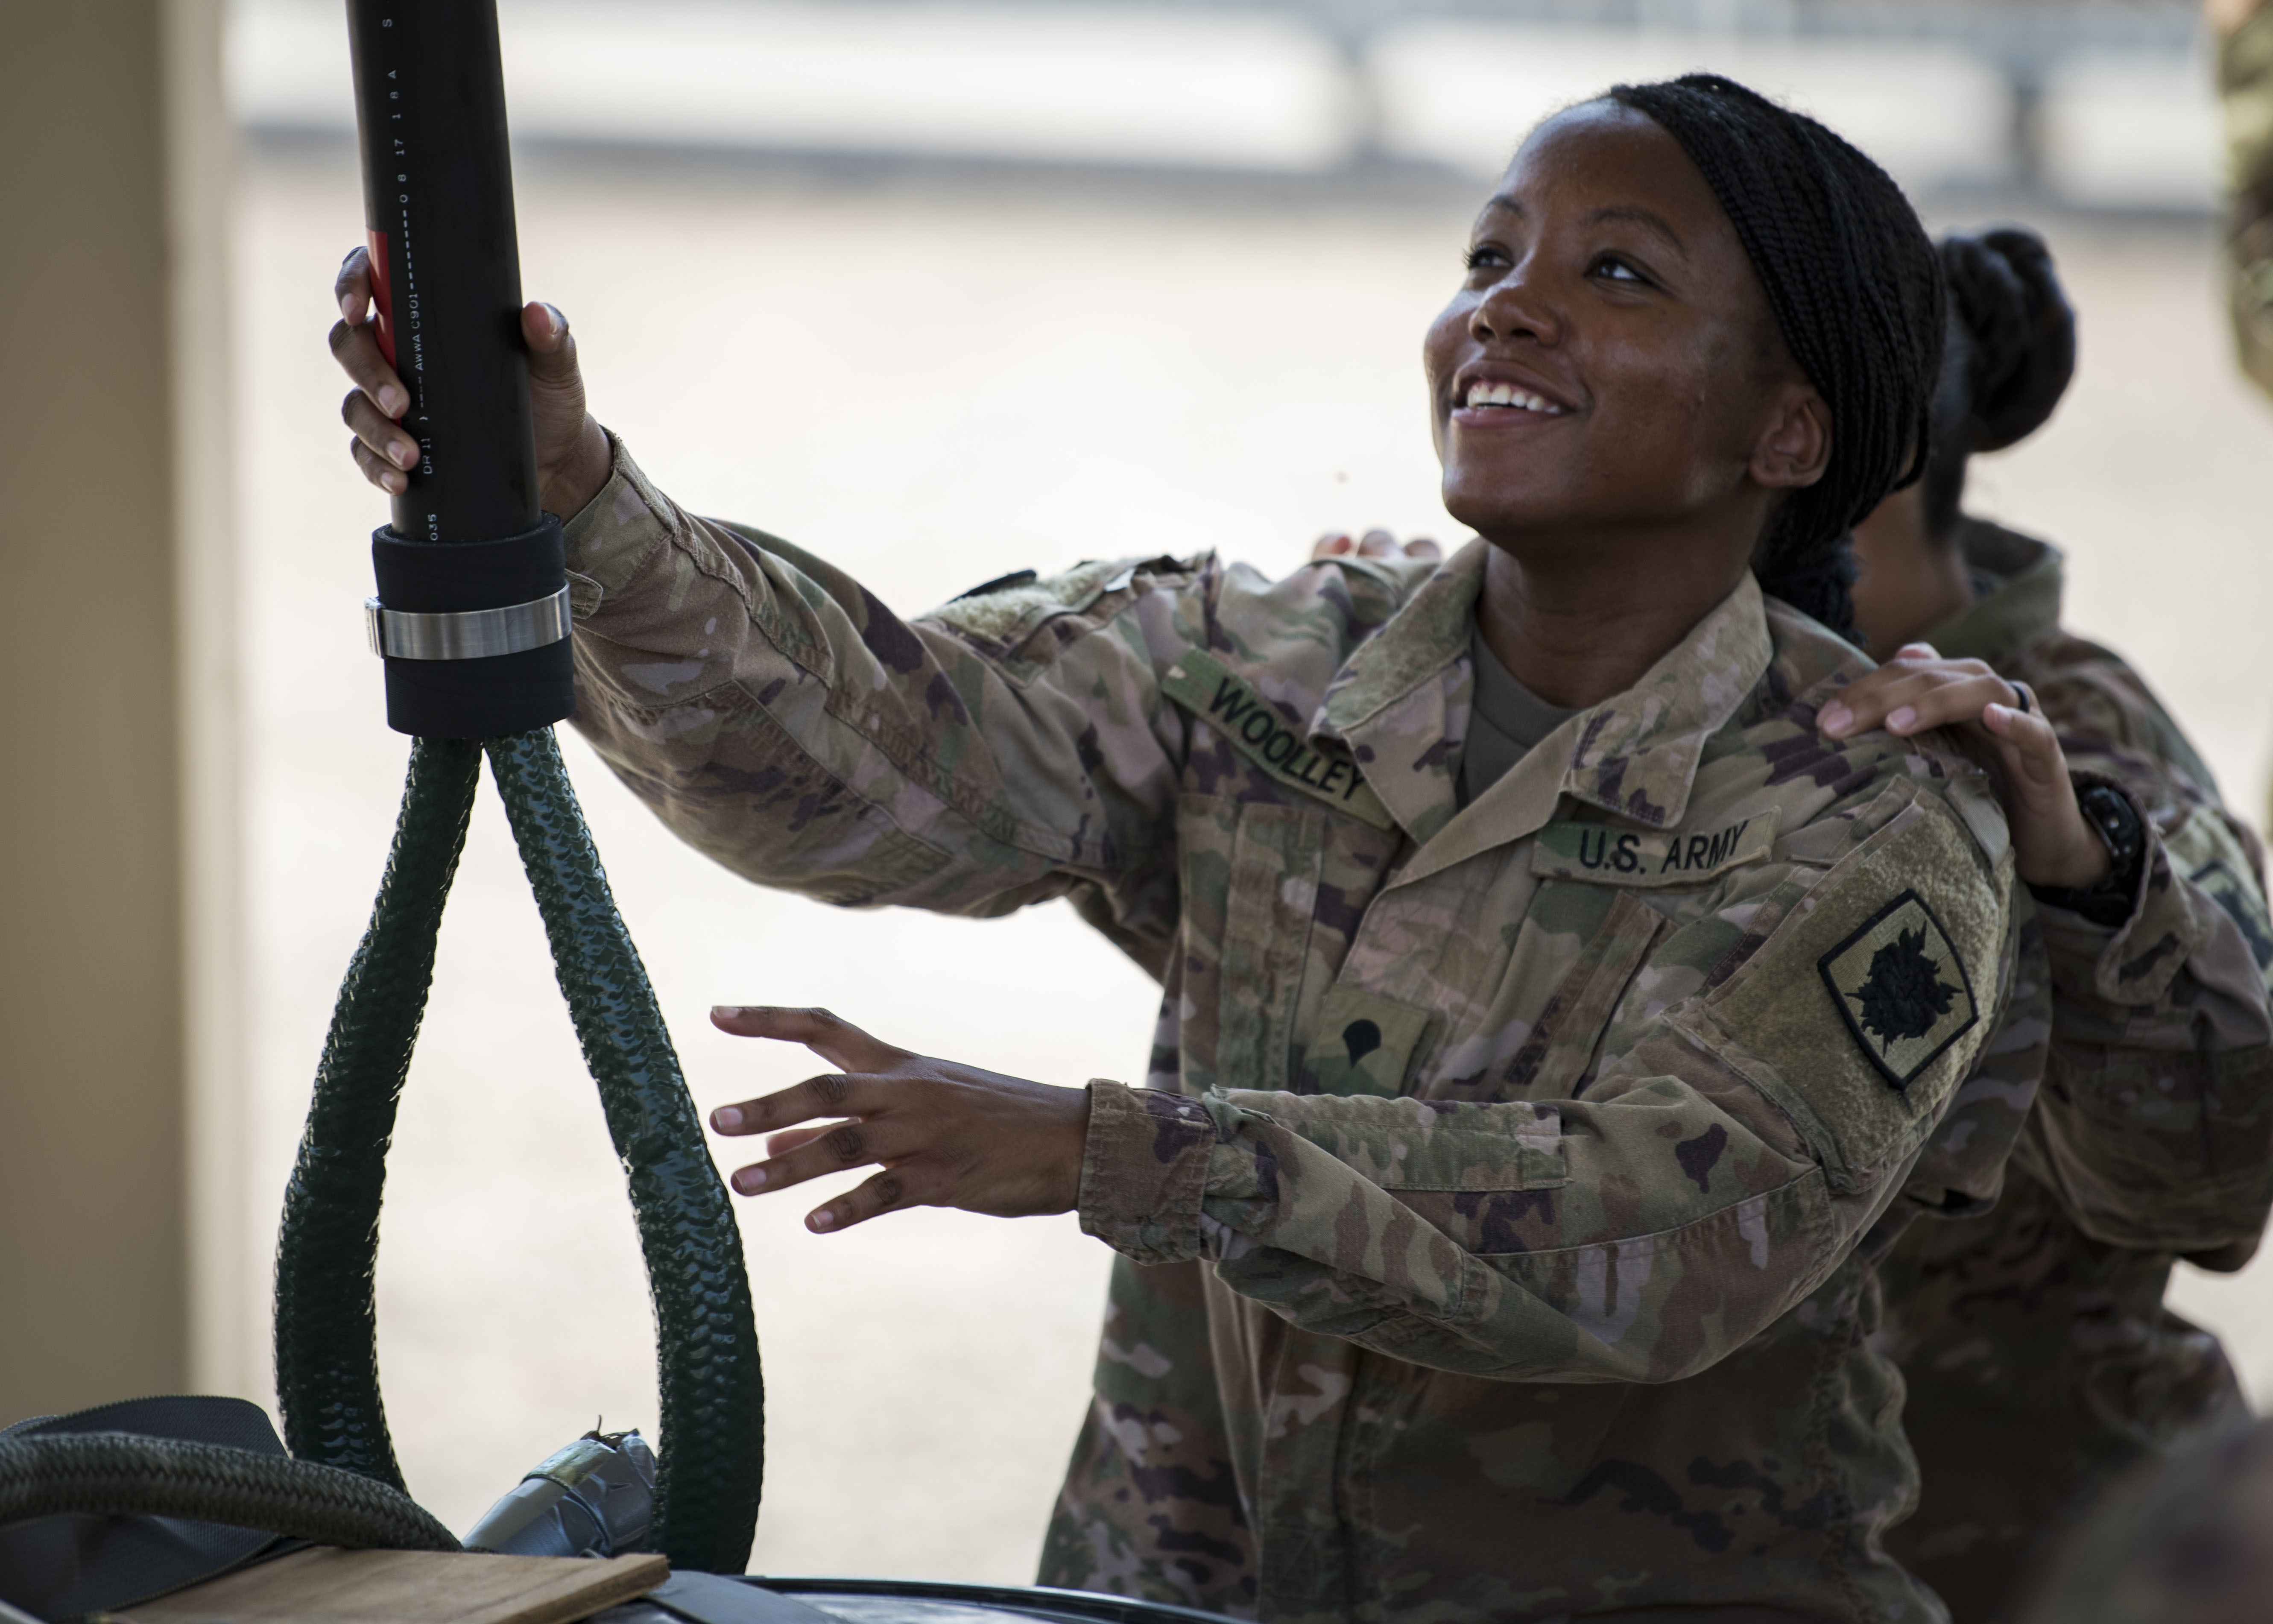 U.S. Army Spc. April Woolley, help desk technician, Communications Directorate, Combined Joint Task Force – Horn of Africa (CJTF-HOA), simulates connecting palletized materials to a helicopter during a sling load training class at Camp Lemonnier, Djibouti, Feb. 27, 2020. The class was designed to familiarize service members with basic sling load procedures, capabilities and operations. (U.S. Air Force photo by Senior Airman Dylan Murakami)